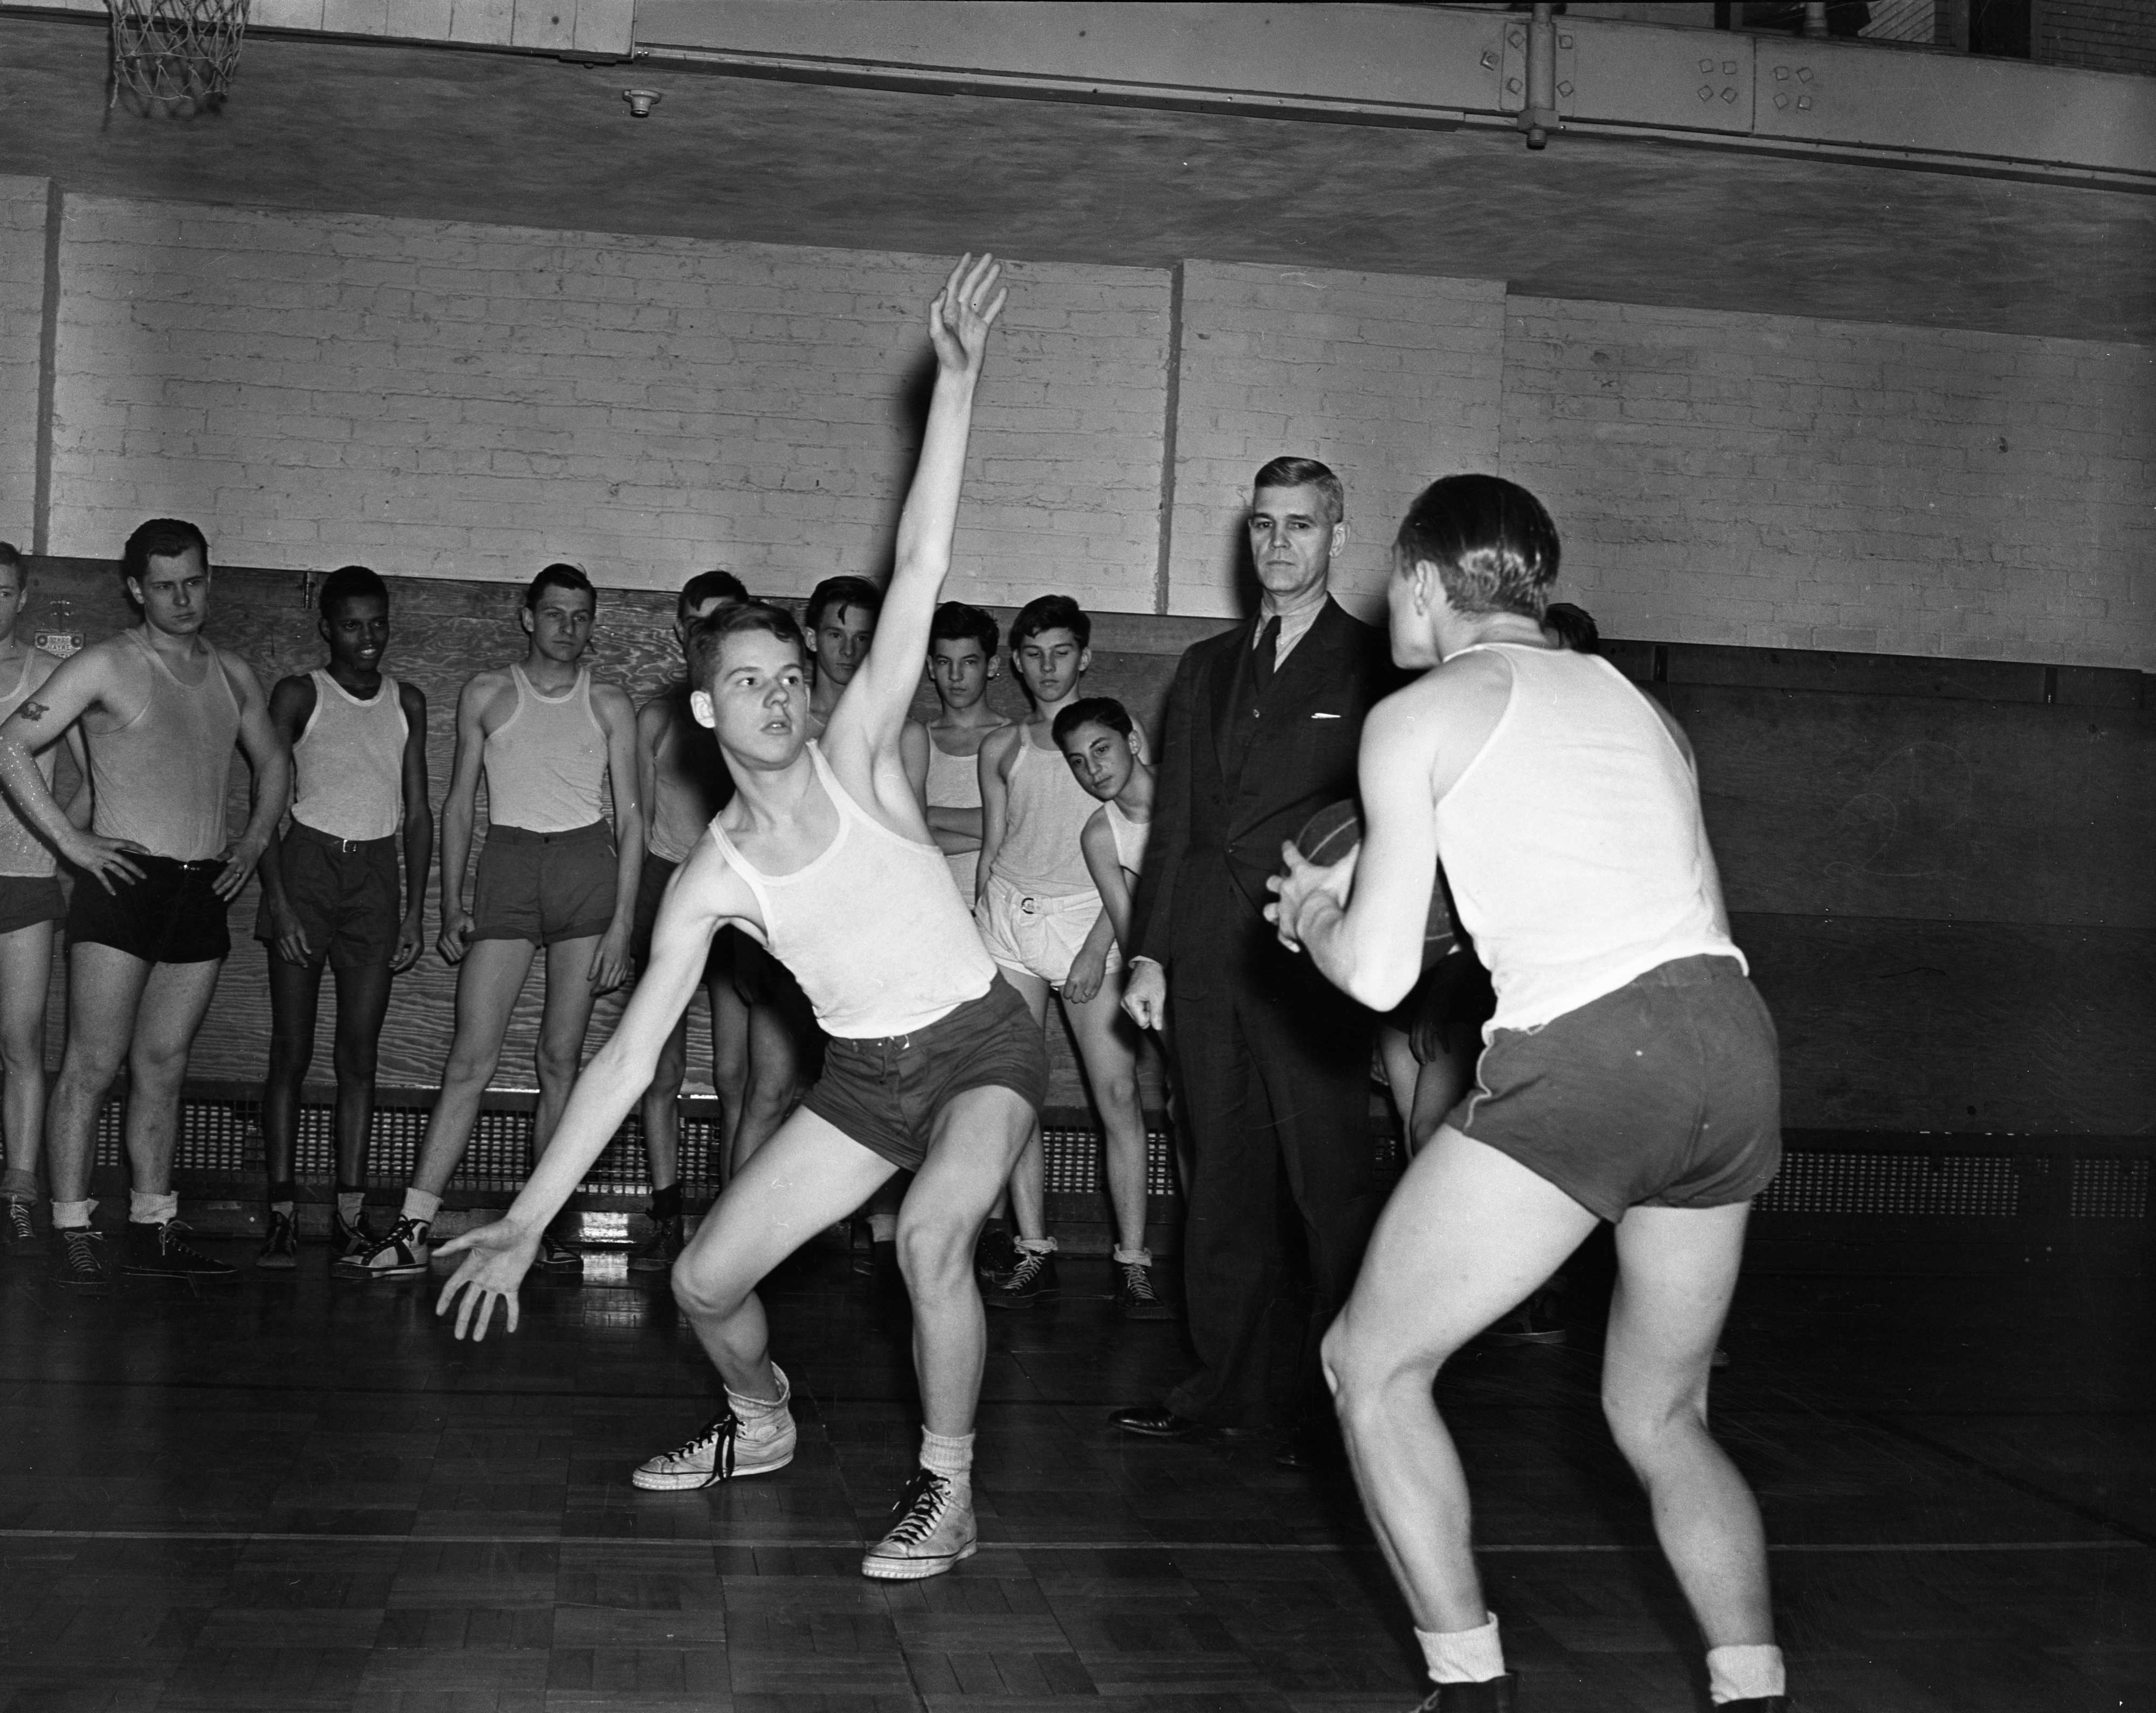 Louis H. Hollway with gym class, January 1939 image